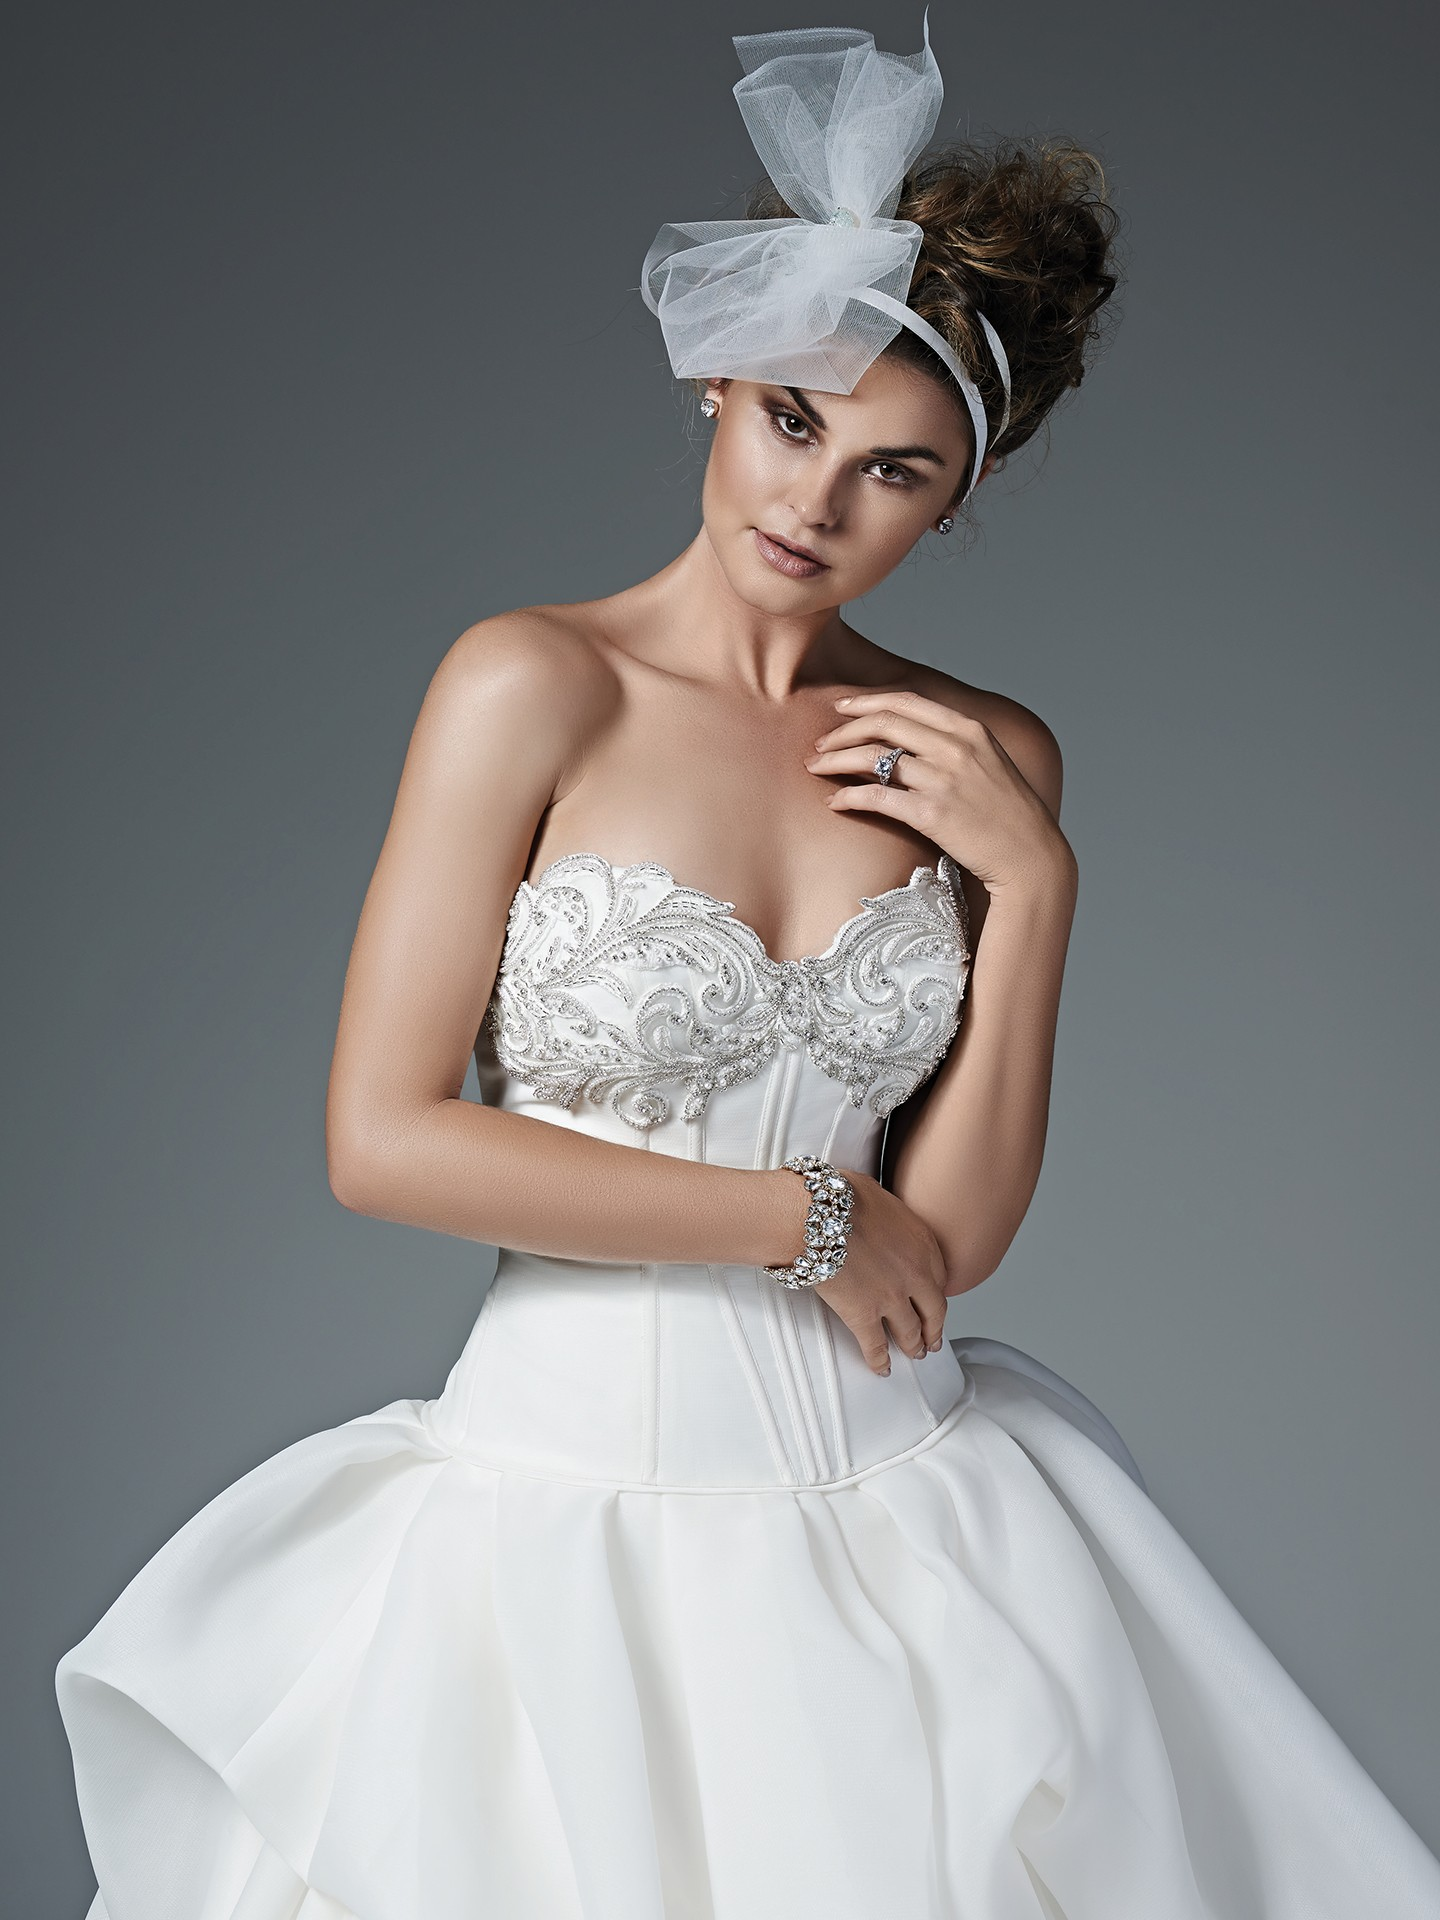 Modern and refined, this Shavon organza ball gown features a stunning pearl and Swarovski crystal encrusted sweetheart neckline and a billowing skirt with delicate pick-ups. Sophisticated exterior boning accents a drop waist. Finished with crystal buttons over zipper and inner corset closure.